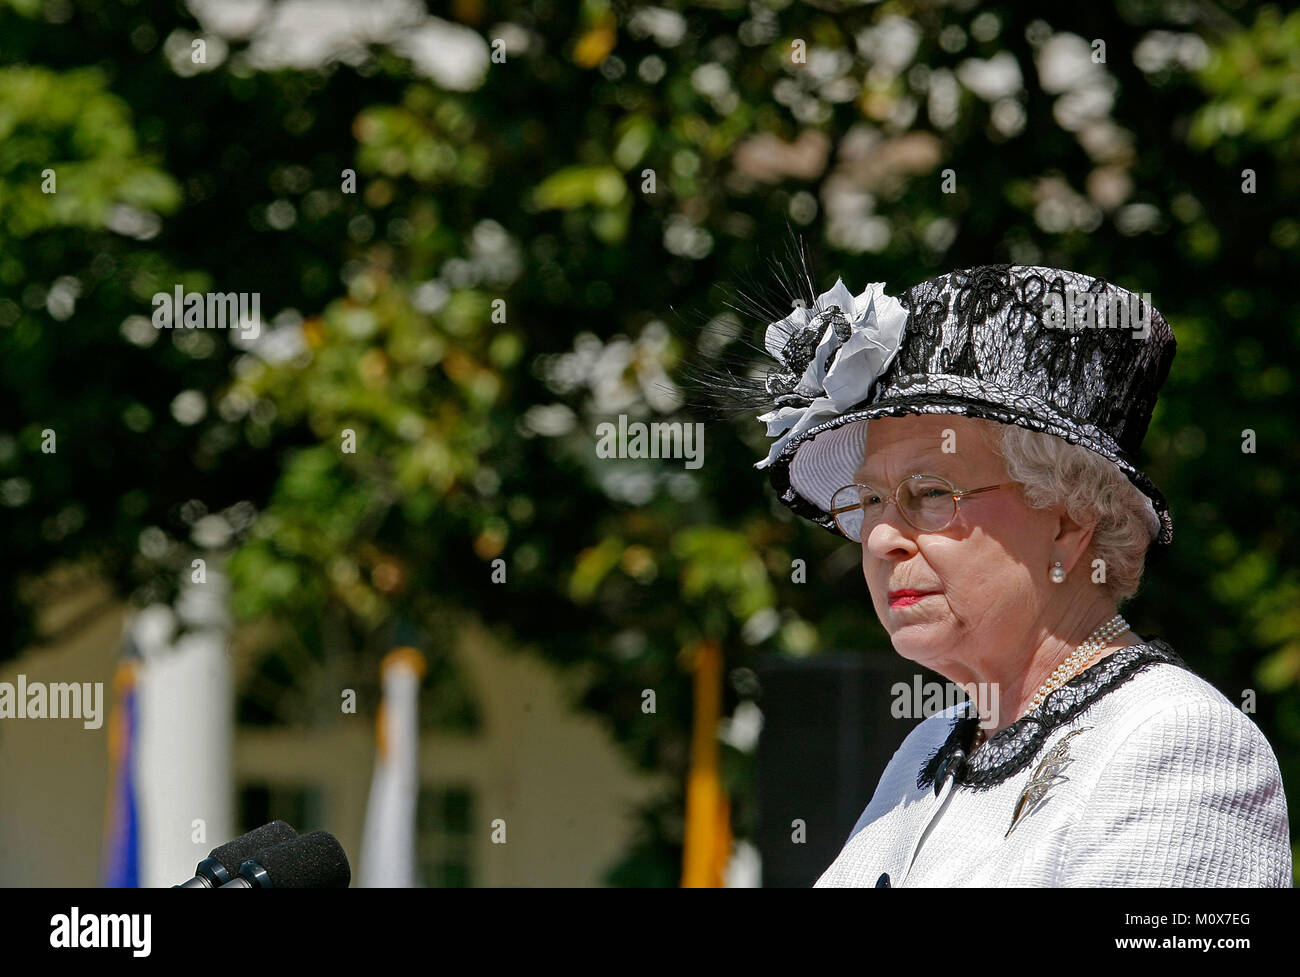 WASHINGTON - MAY 07:  (AFP OUT) HRH Queen Elizabeth II speaks at a ceremony on the South Lawn of the White House - Stock Image